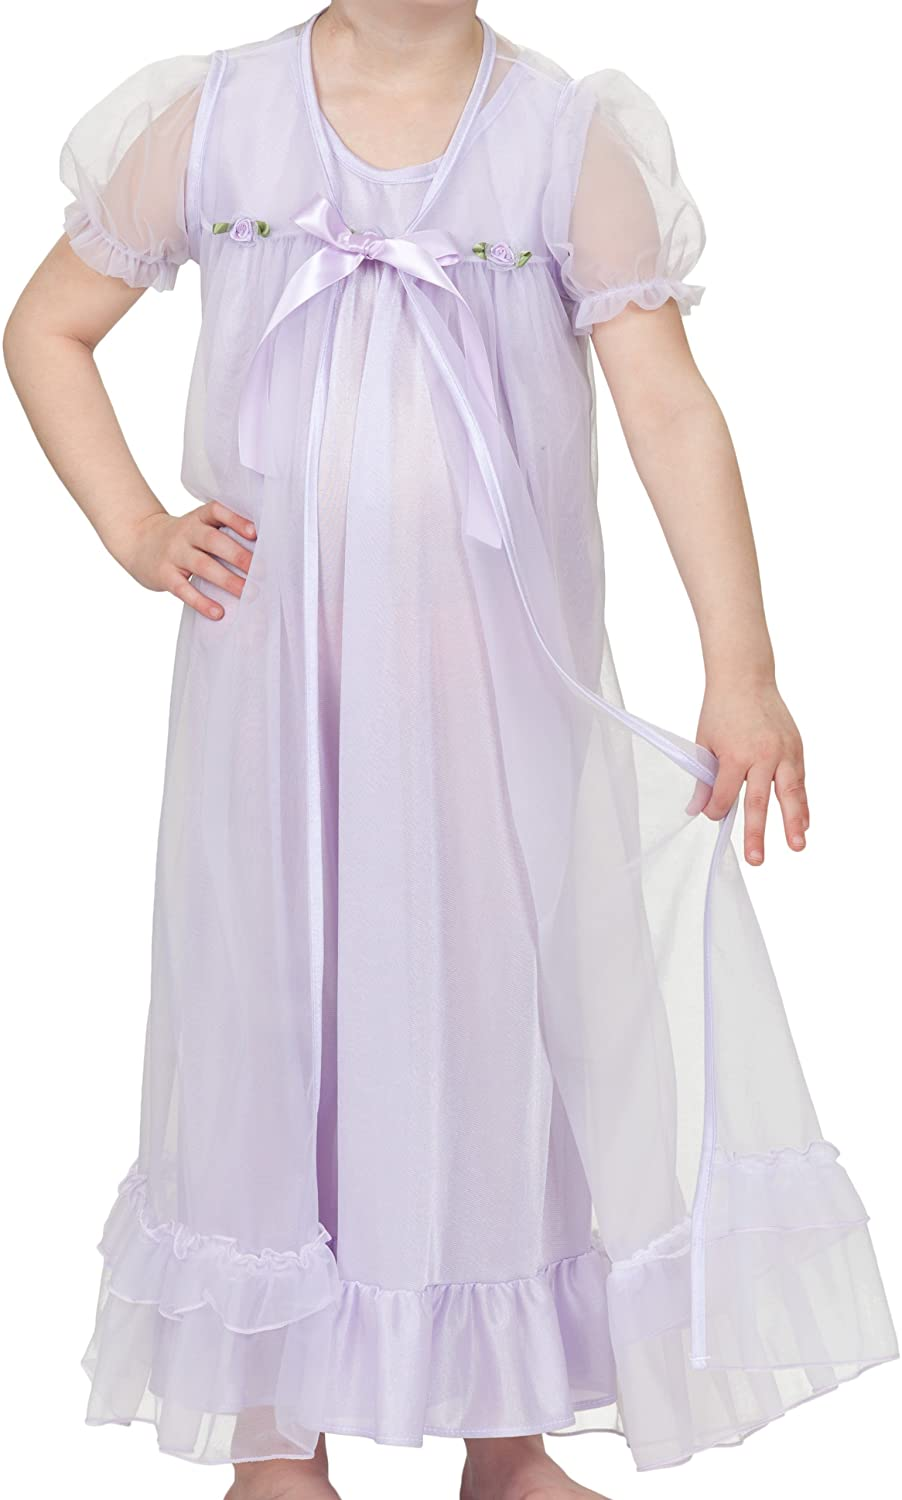 Laura Dare Big Girls Short Sleeve Peignoir Nightgown Robe Set w Scrunchie, 7-14